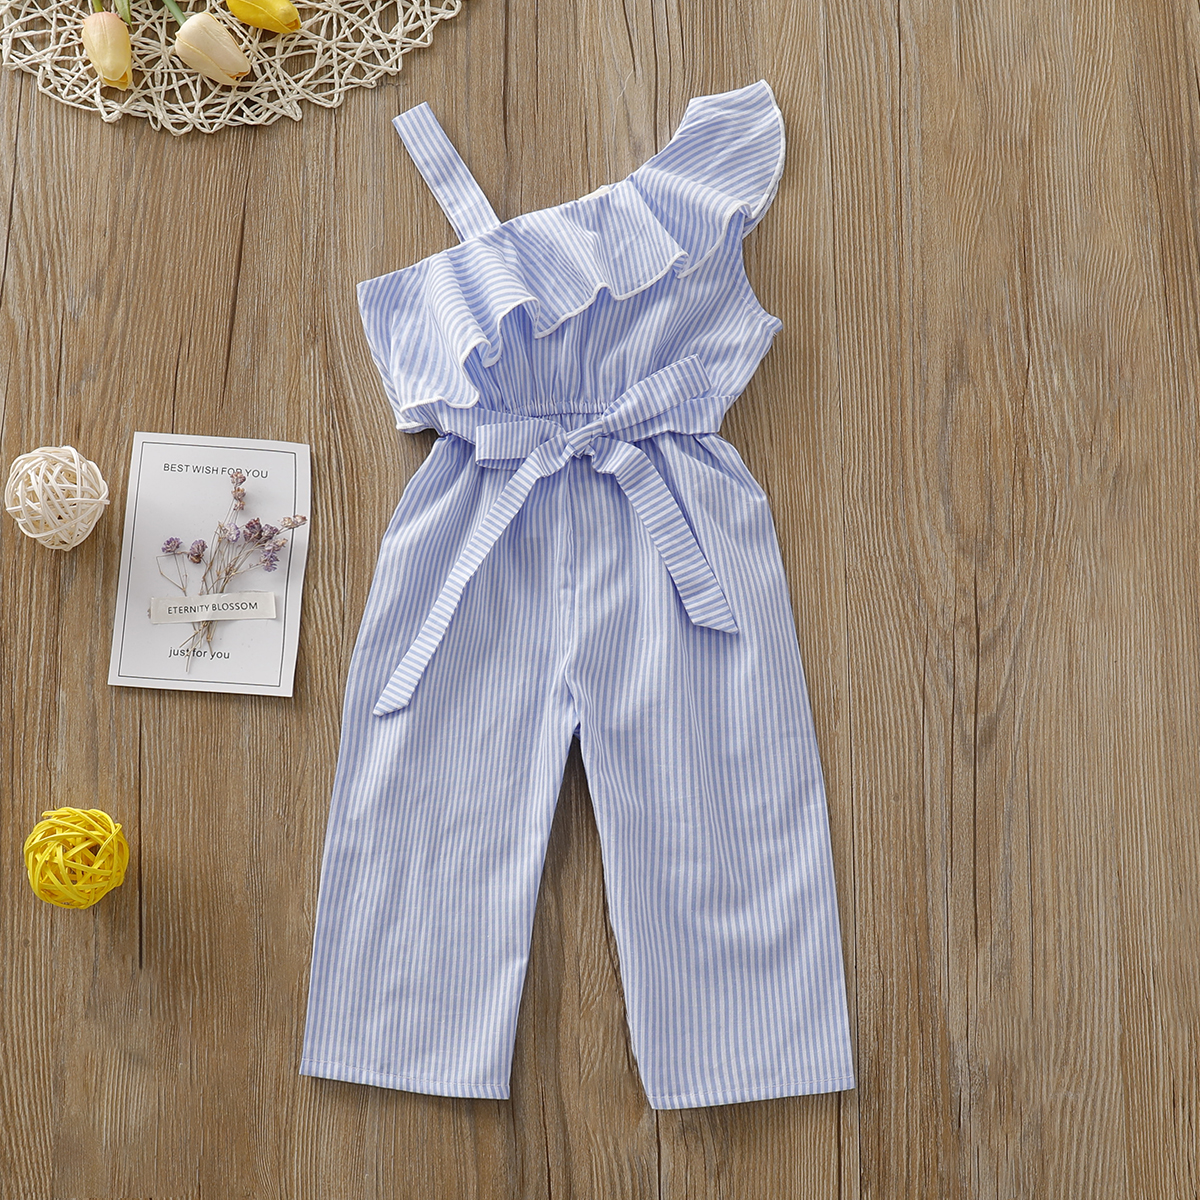 Pudcoco Summer Toddler Baby Girl Clothes Off Shoulder Ruffle Cotton Striped Romper Jumpsuit One-piece Outfit Playsuit Summer